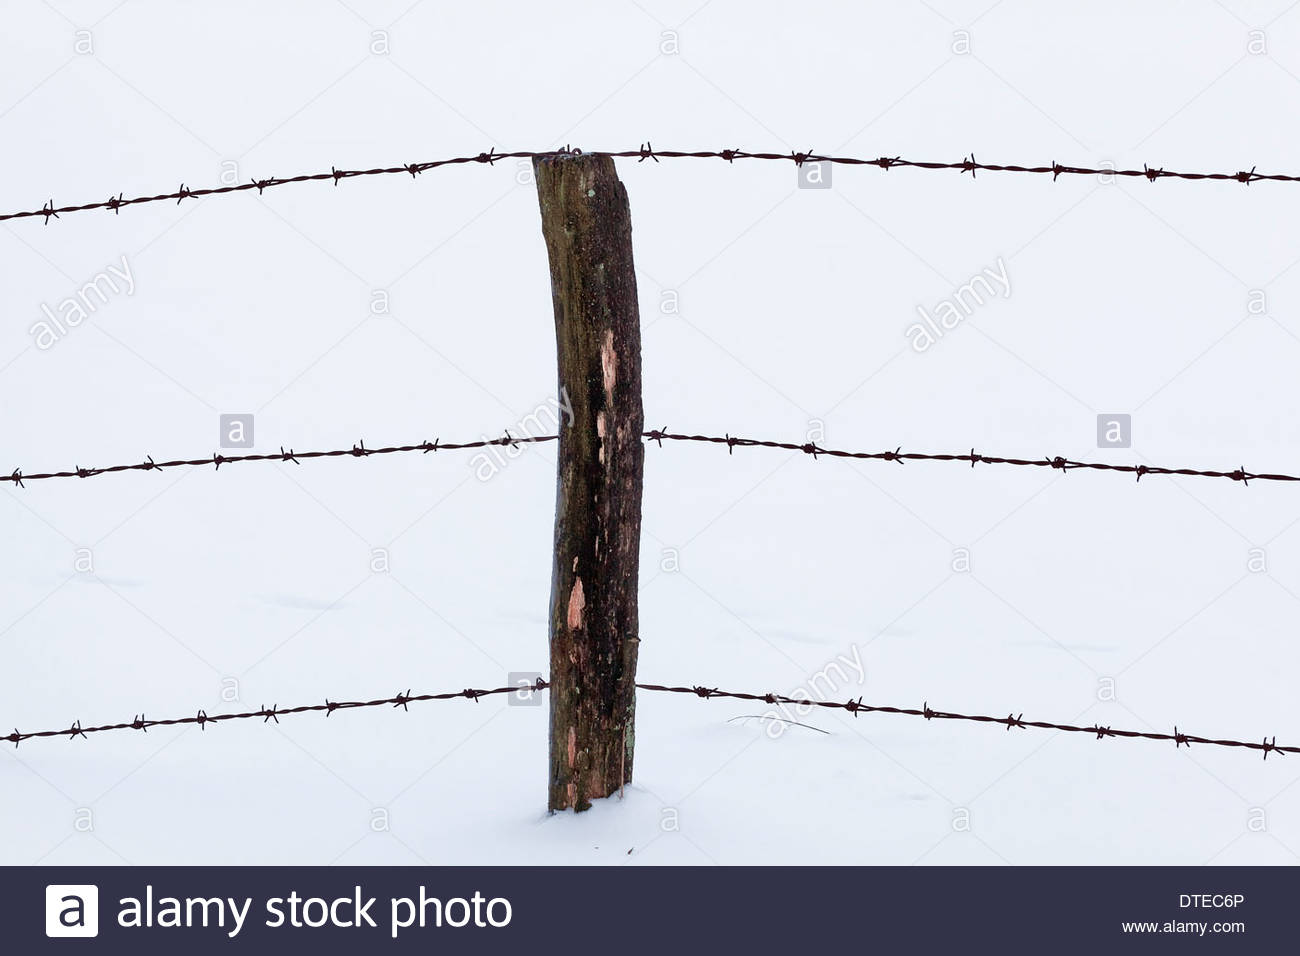 barbed wire fence, wooden fence post in deep snow, Germany - Stock Image